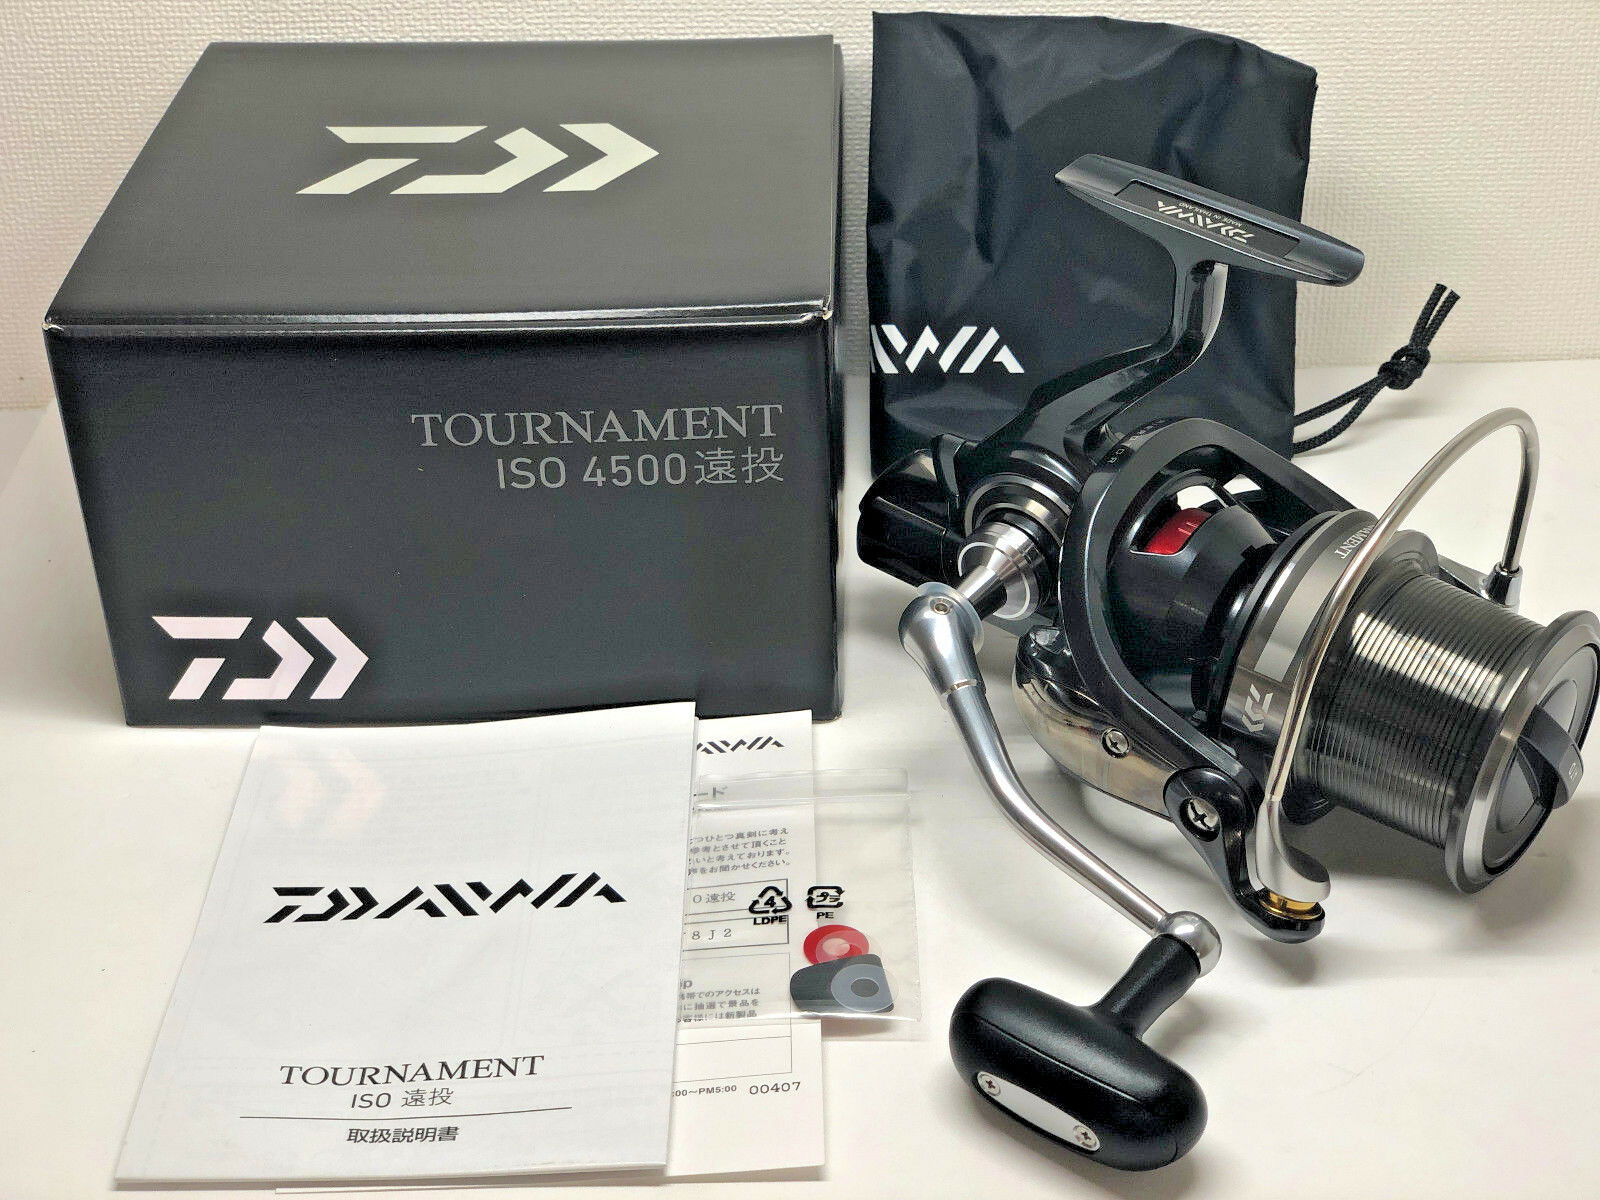 DAIWA 17 Tournament ISO 4500 ENTOU    Free Shipping from Japan